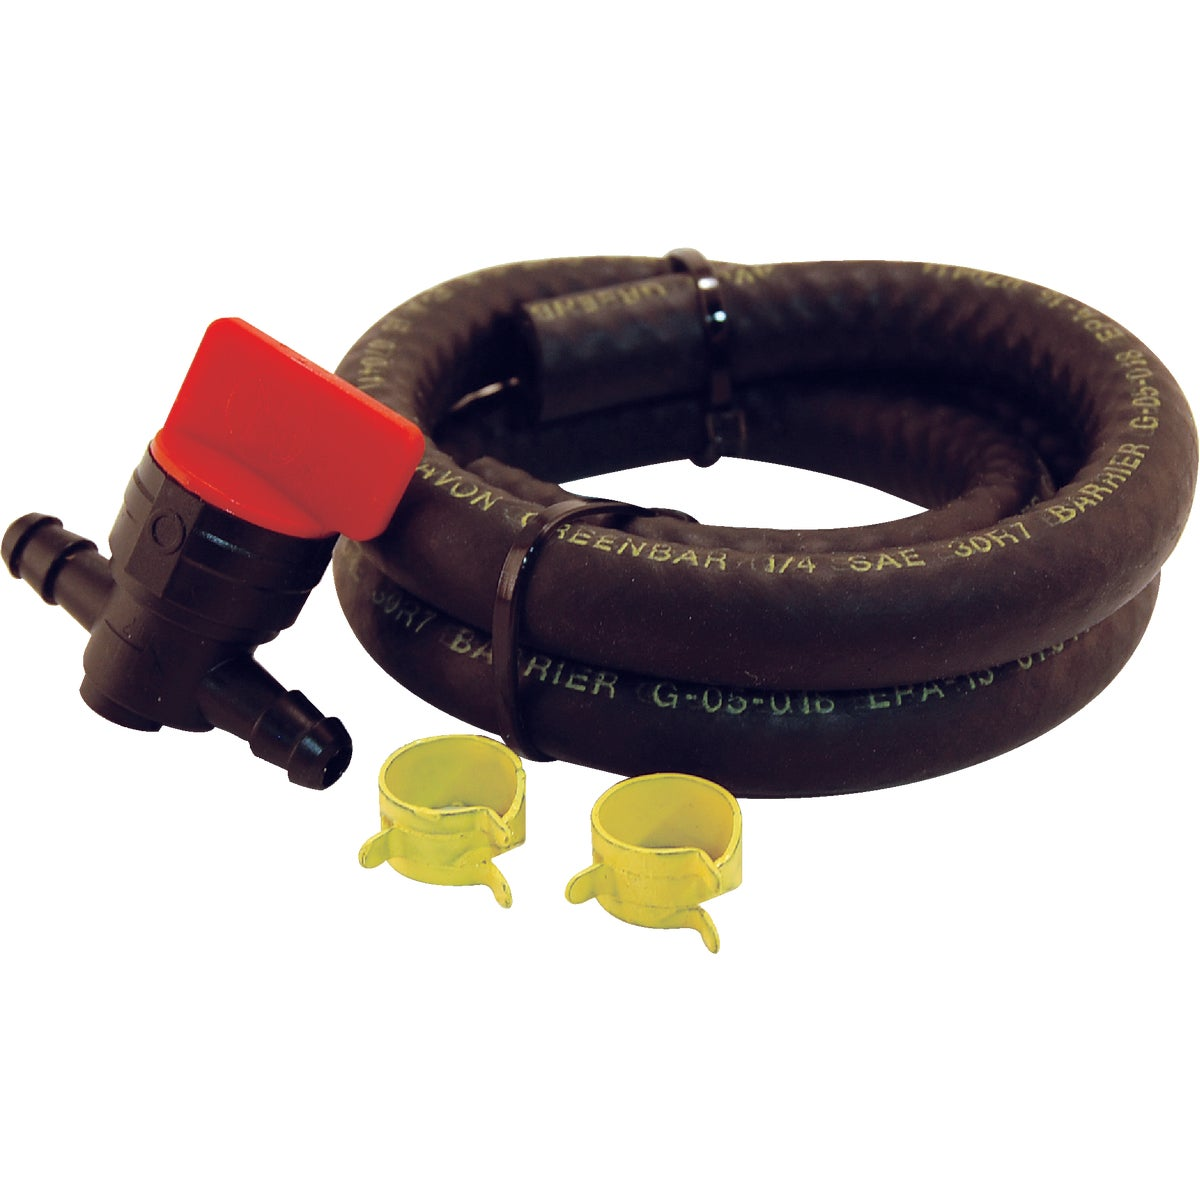 GAS LINE SHUT-OFF VALVE - GSV-200 by Arnold Corp